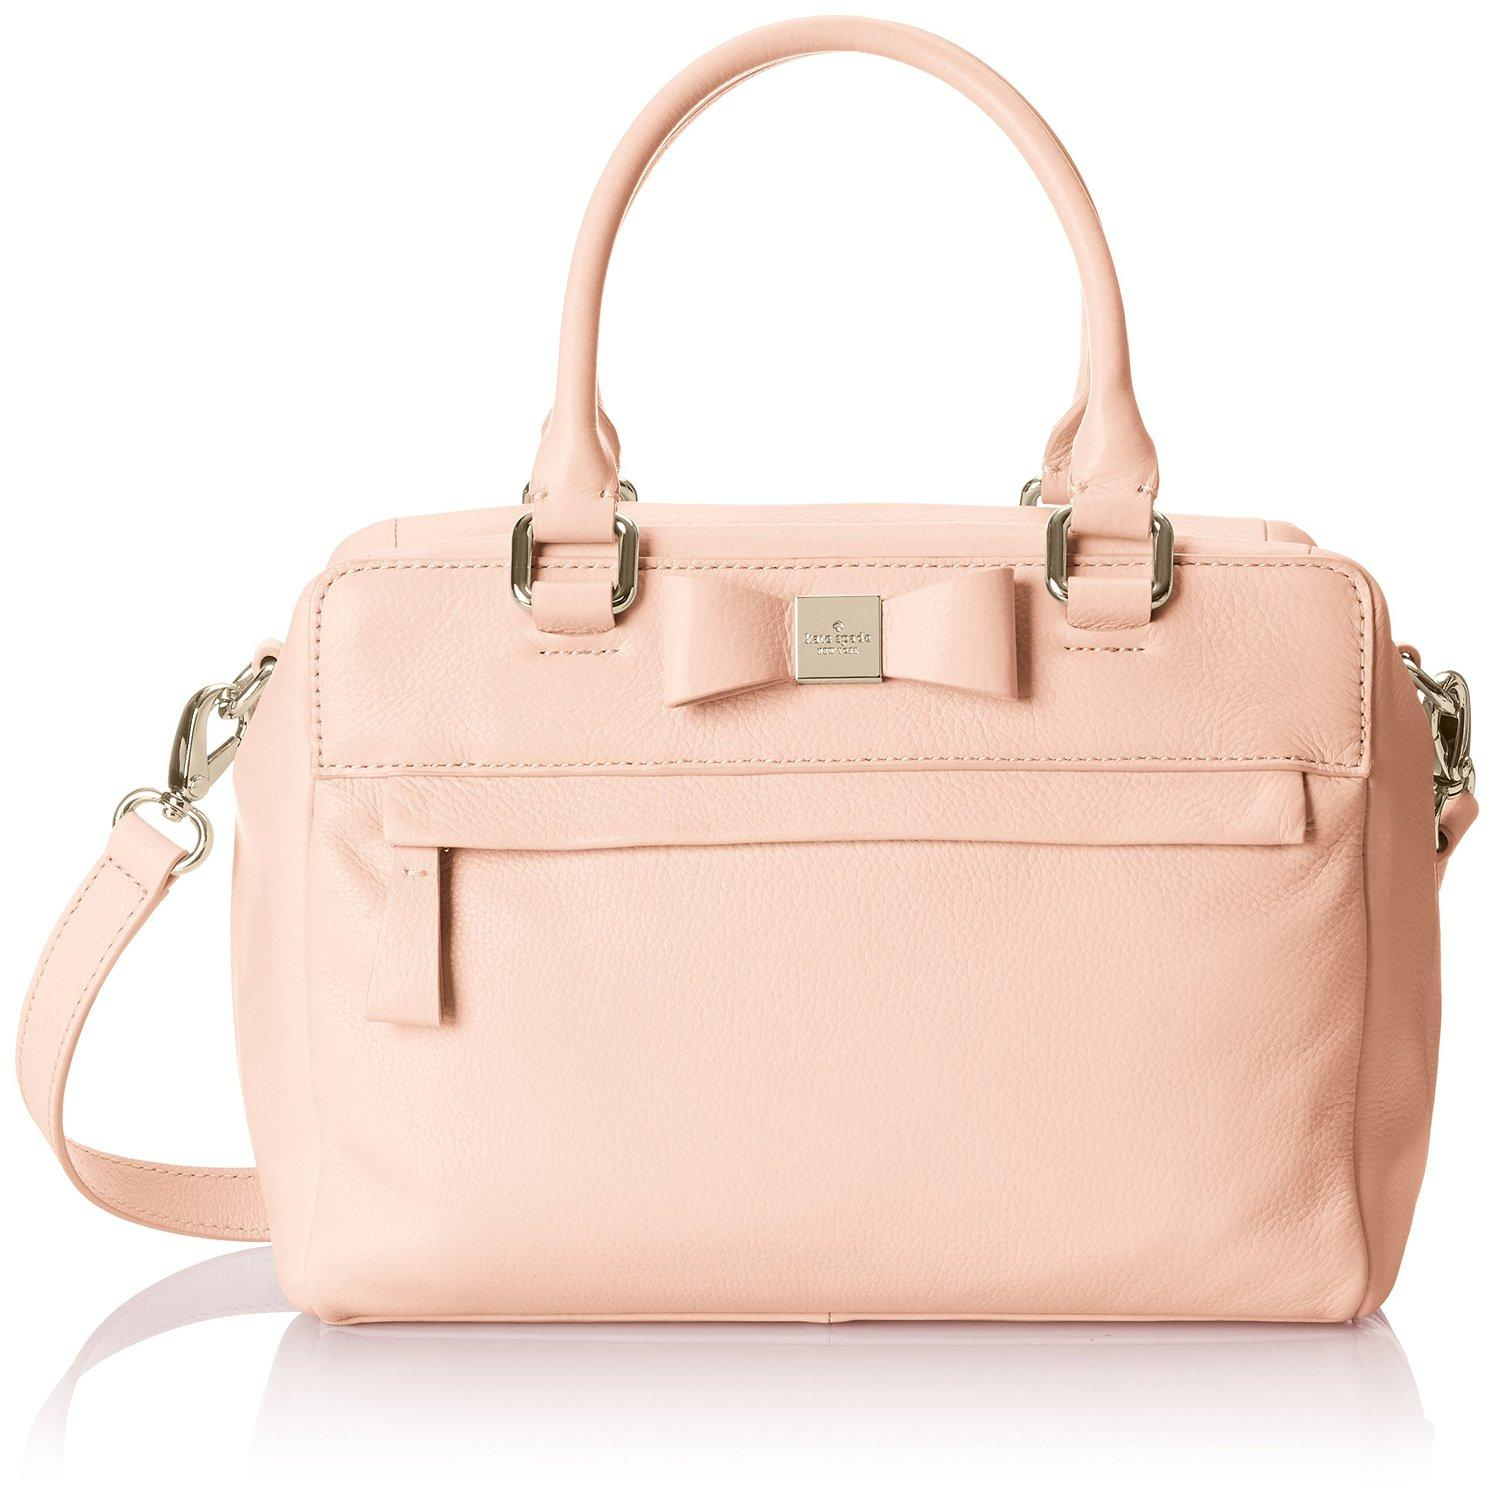 Kate Spade New York Renny Drive Ashton Top Handle Bag